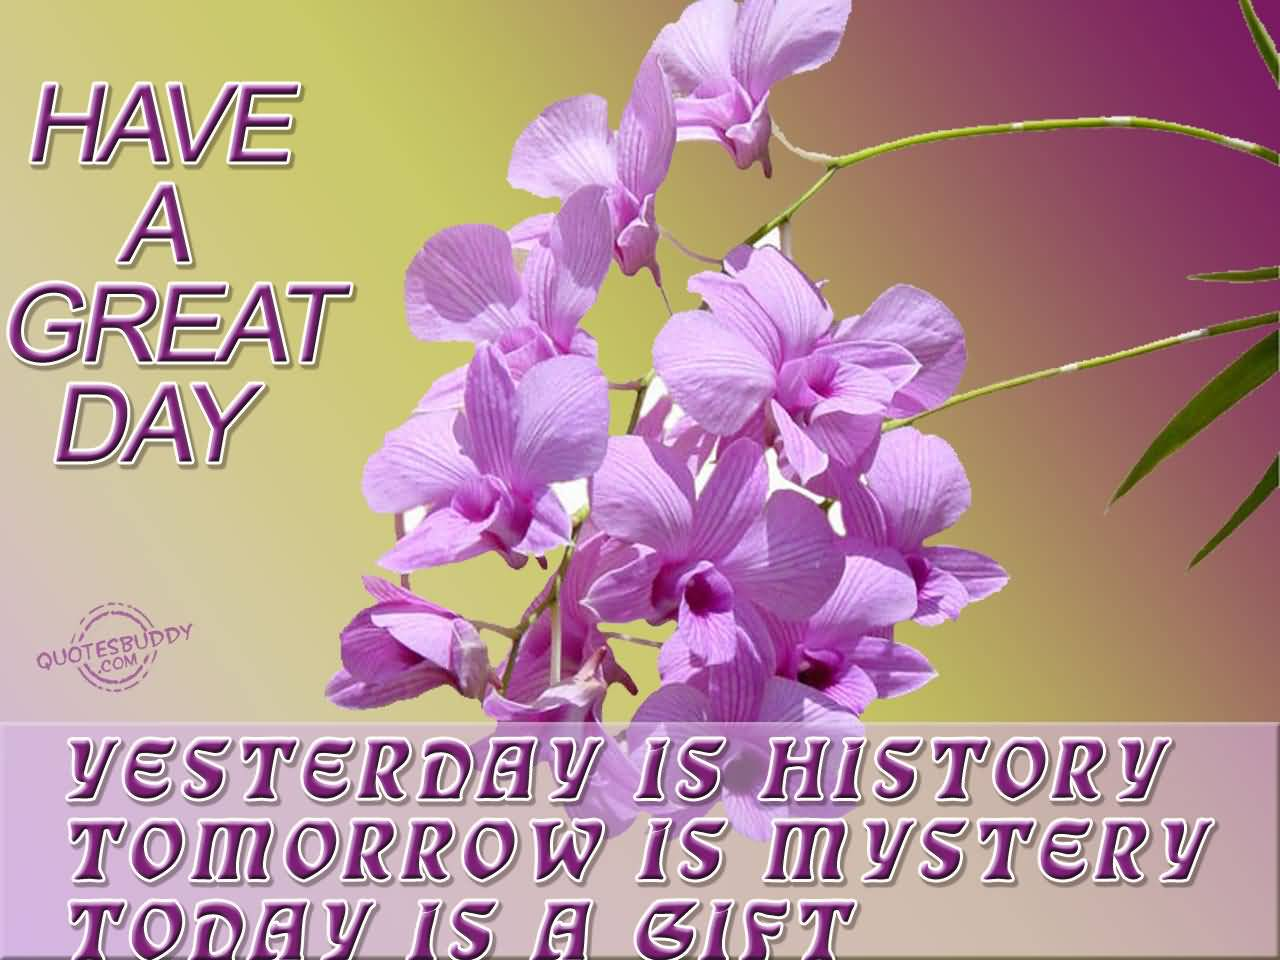 Day Quotes have a great day yesterday is history